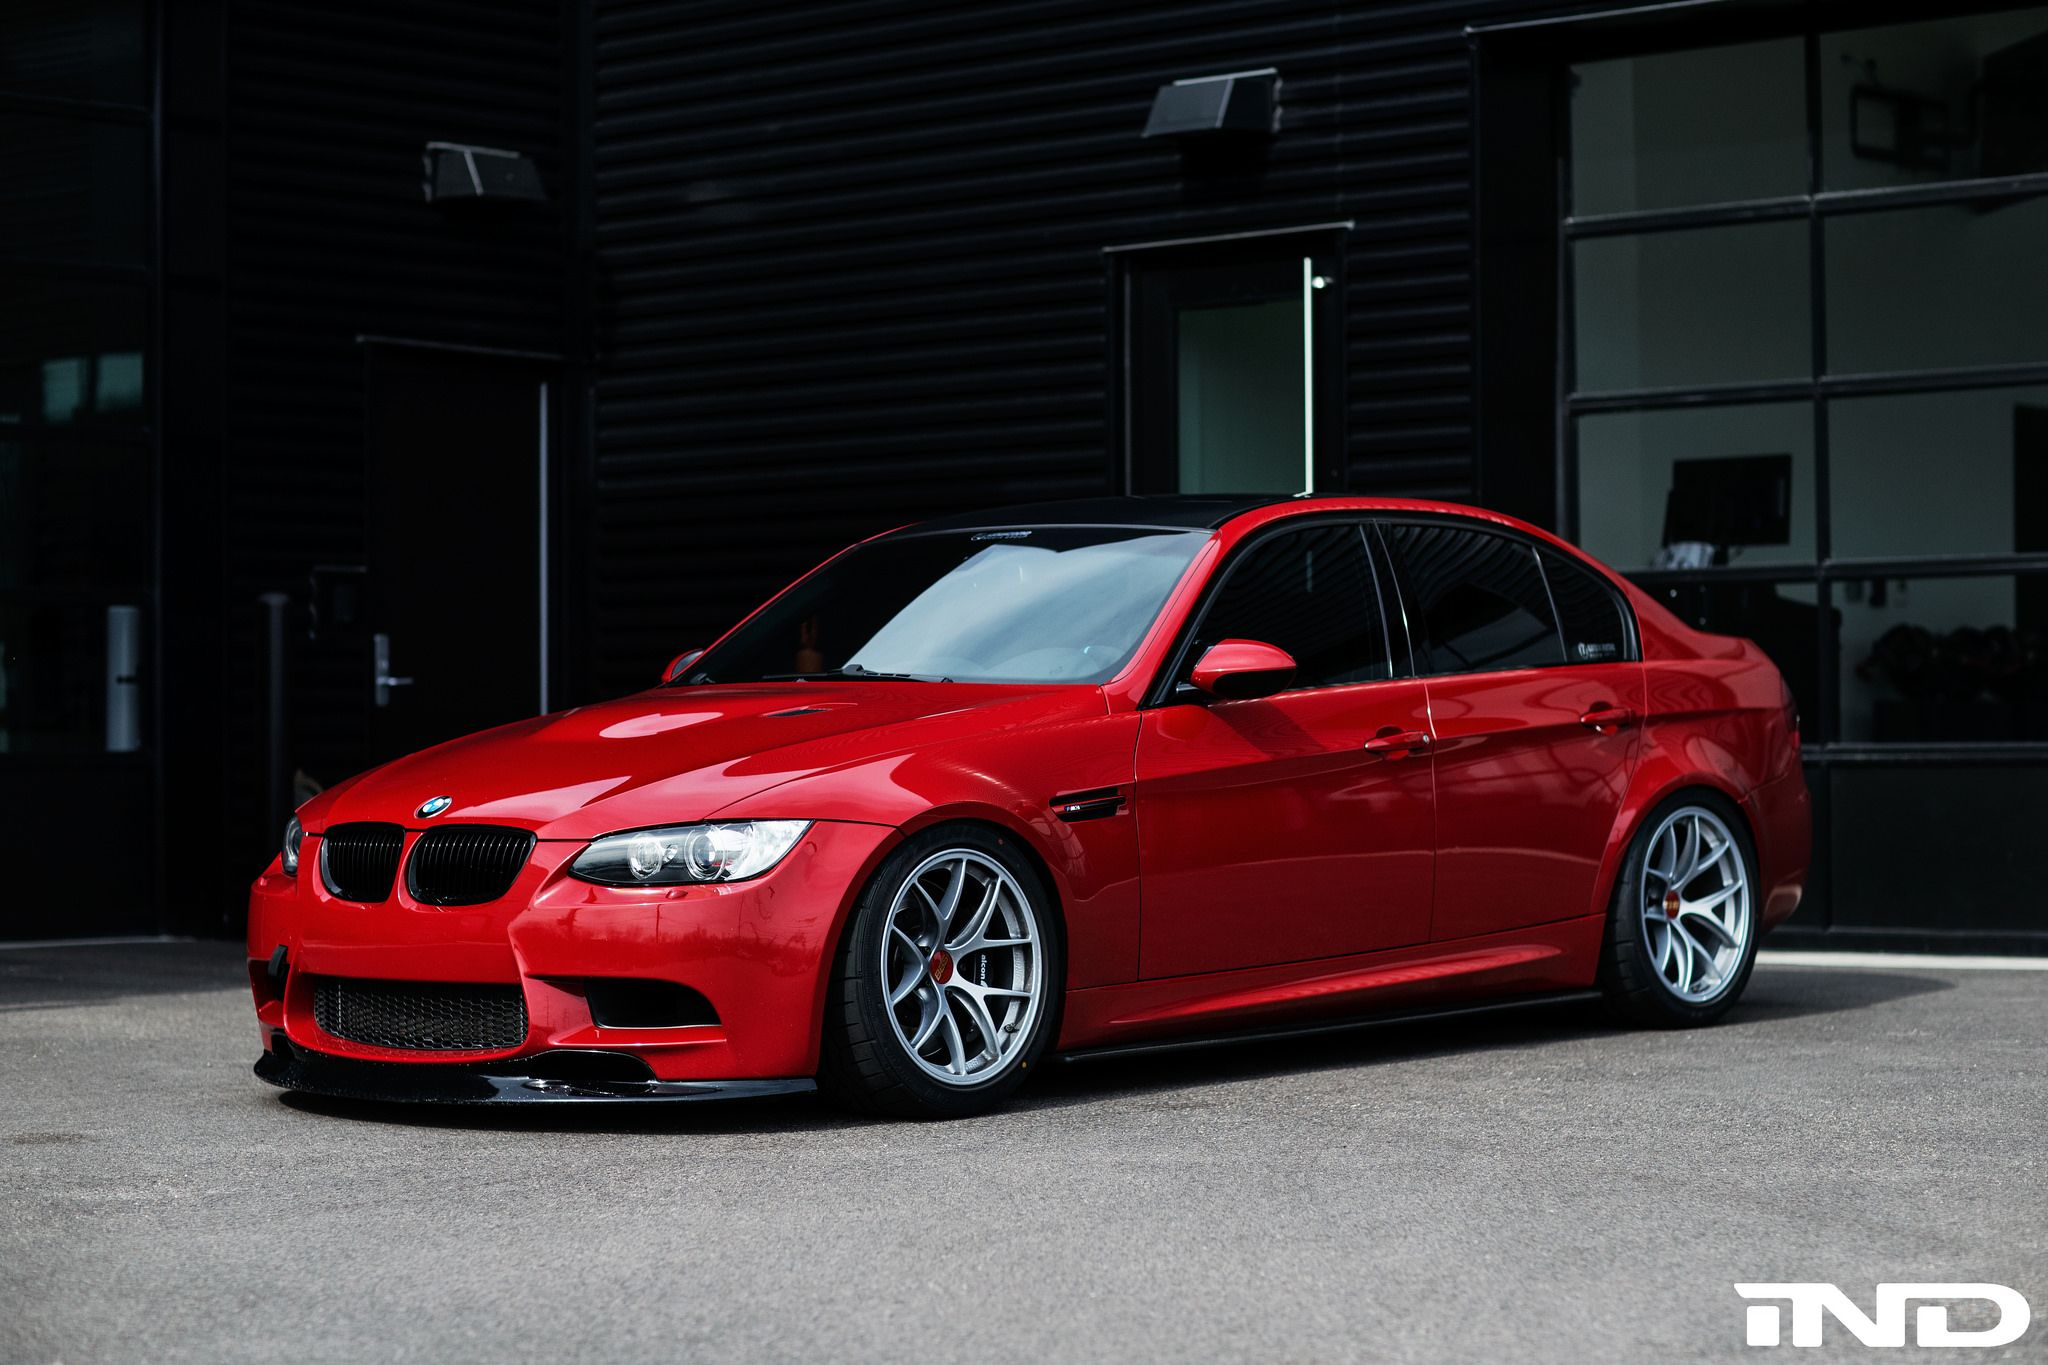 bmw e90 m3 sedan reddevil mperformance xdrive. Black Bedroom Furniture Sets. Home Design Ideas